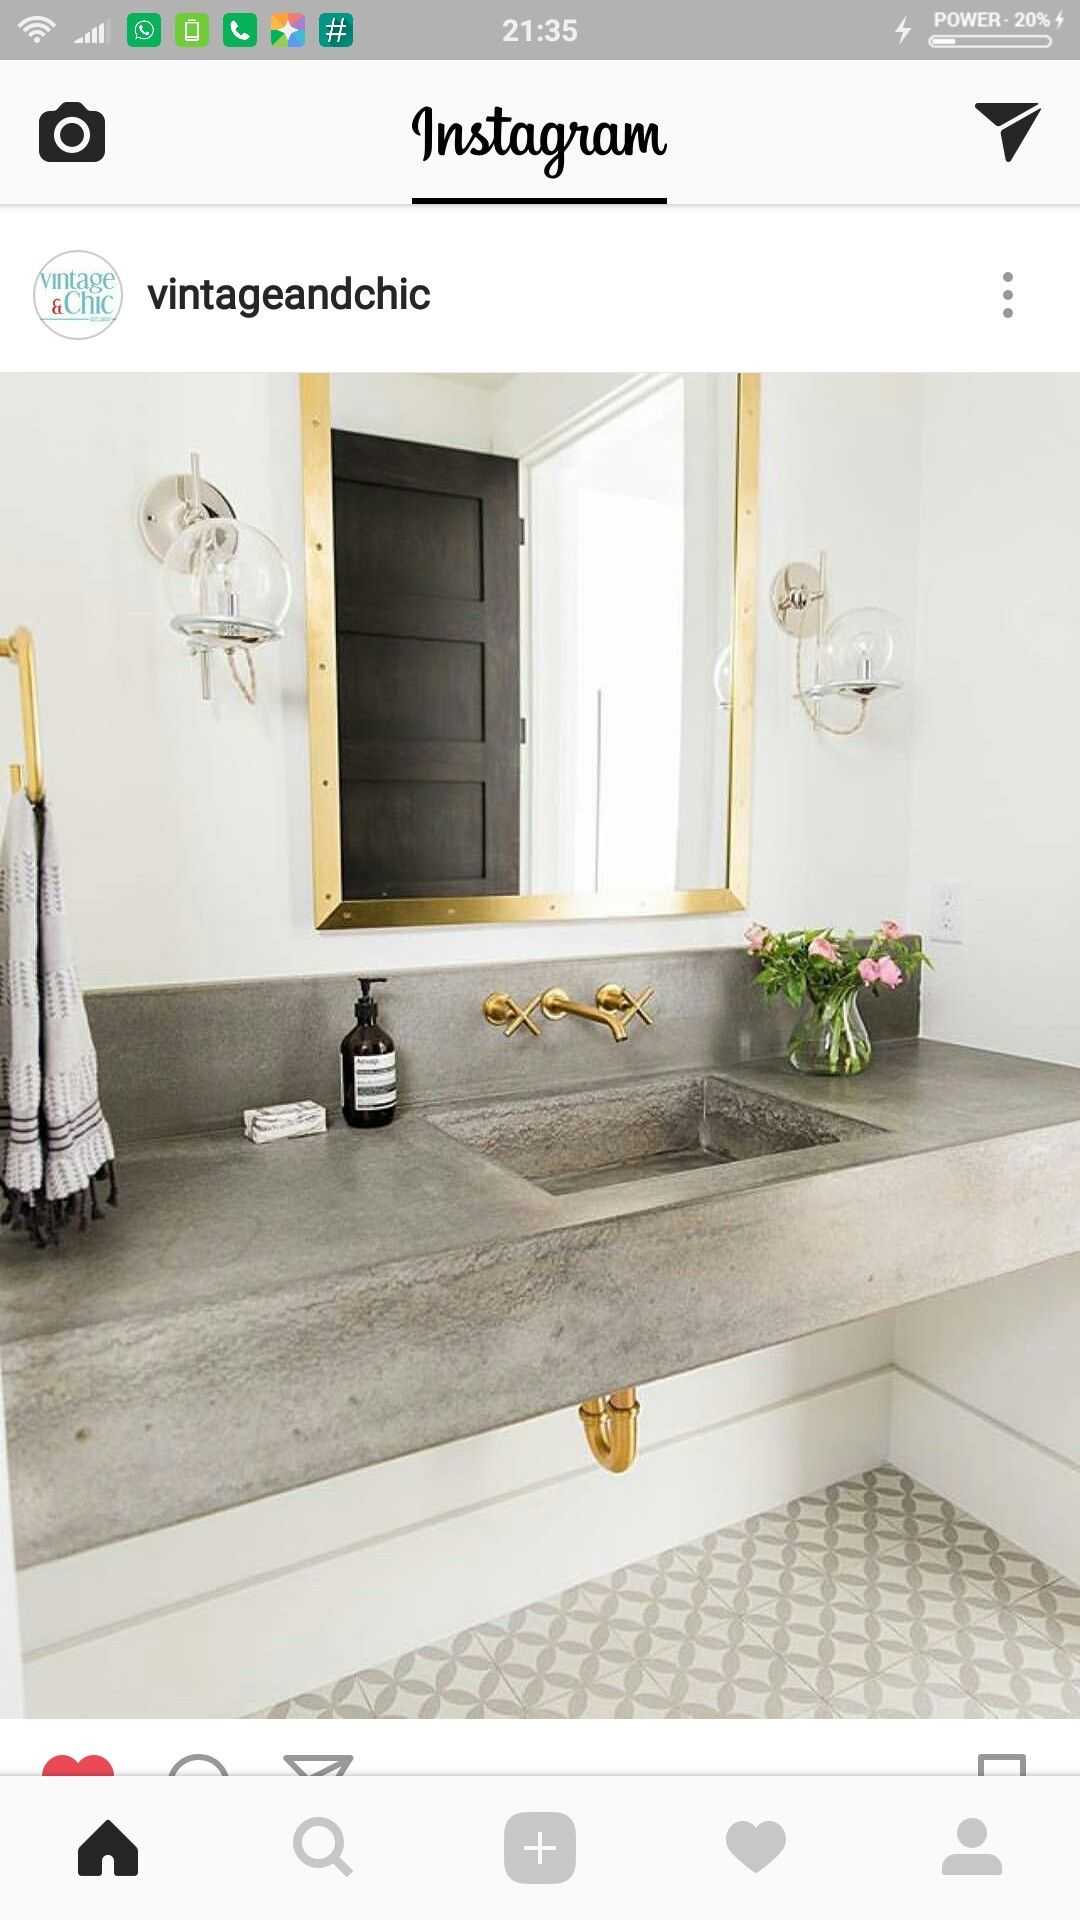 Pin by Ana Campa on Deco | Pinterest